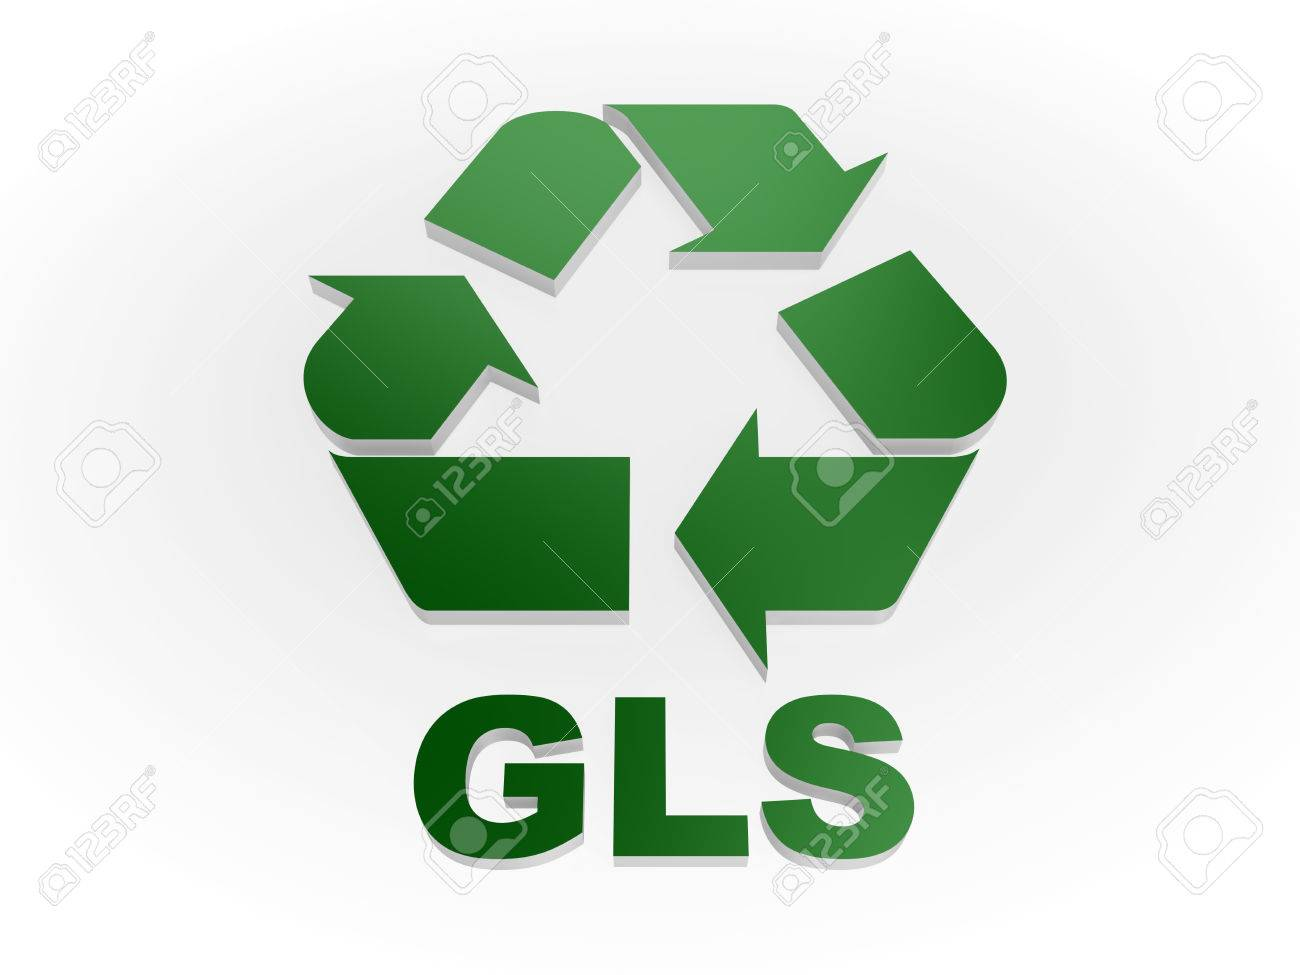 Recycle Gls Sign Recycling Codes Glass Stock Photo Picture And